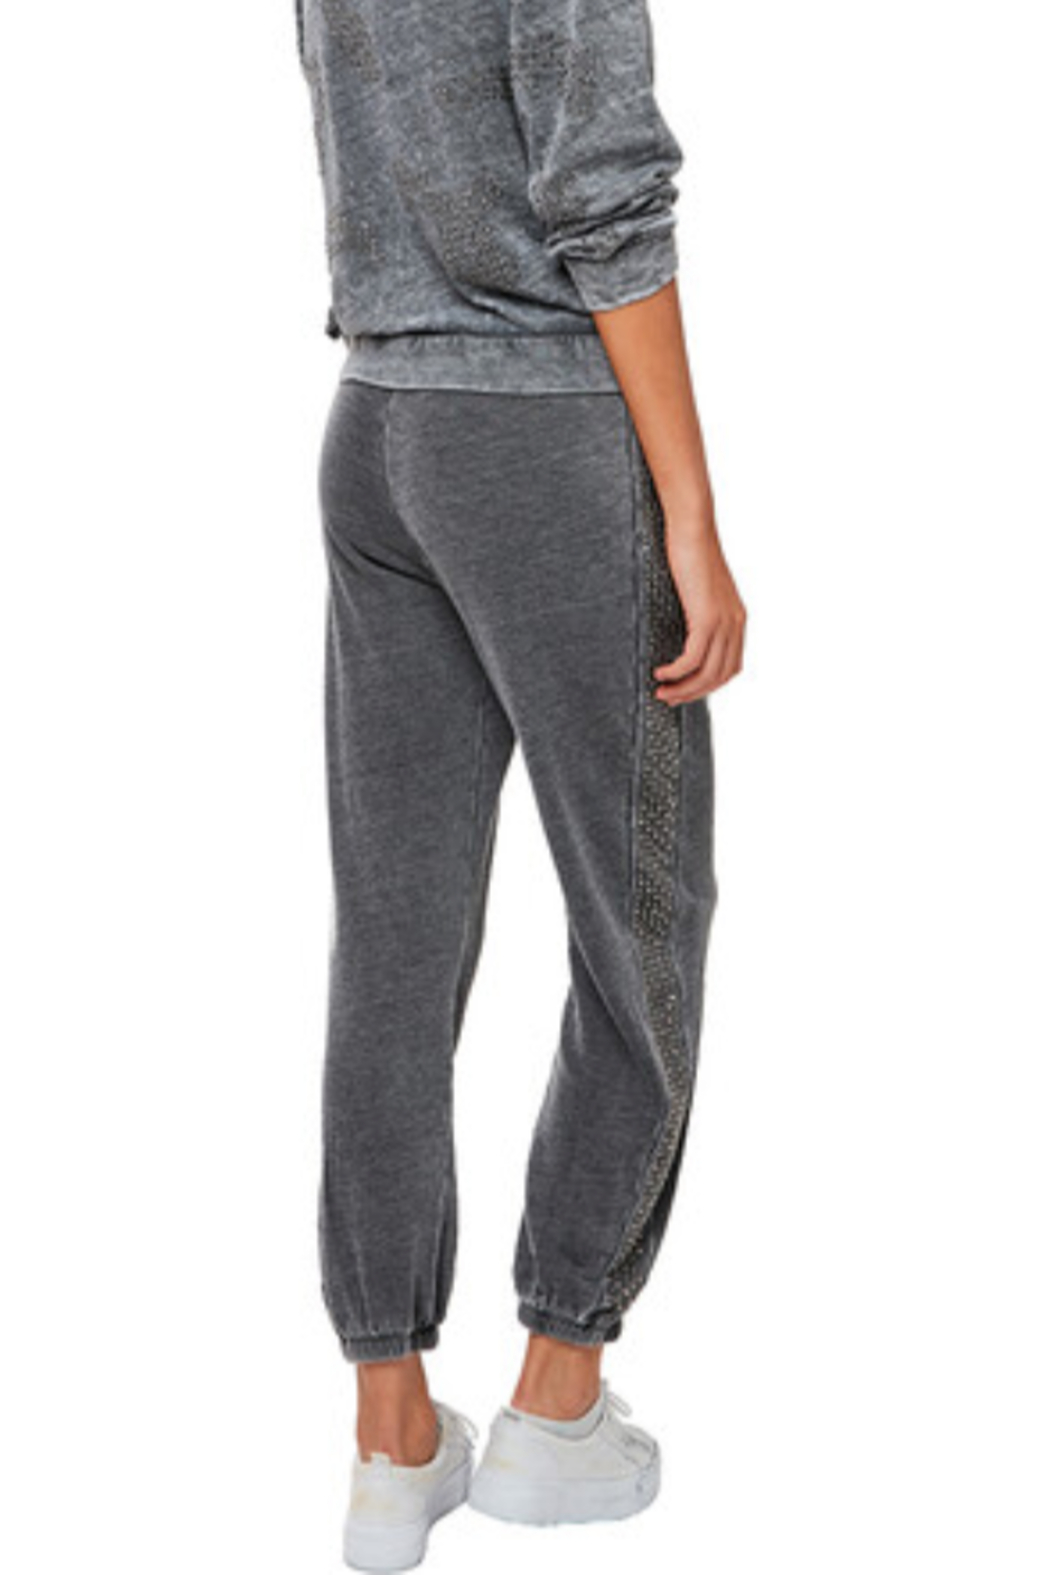 Astars Cozy burn out french terry joggers with gunmetal studs on the side seams - Front Full Image